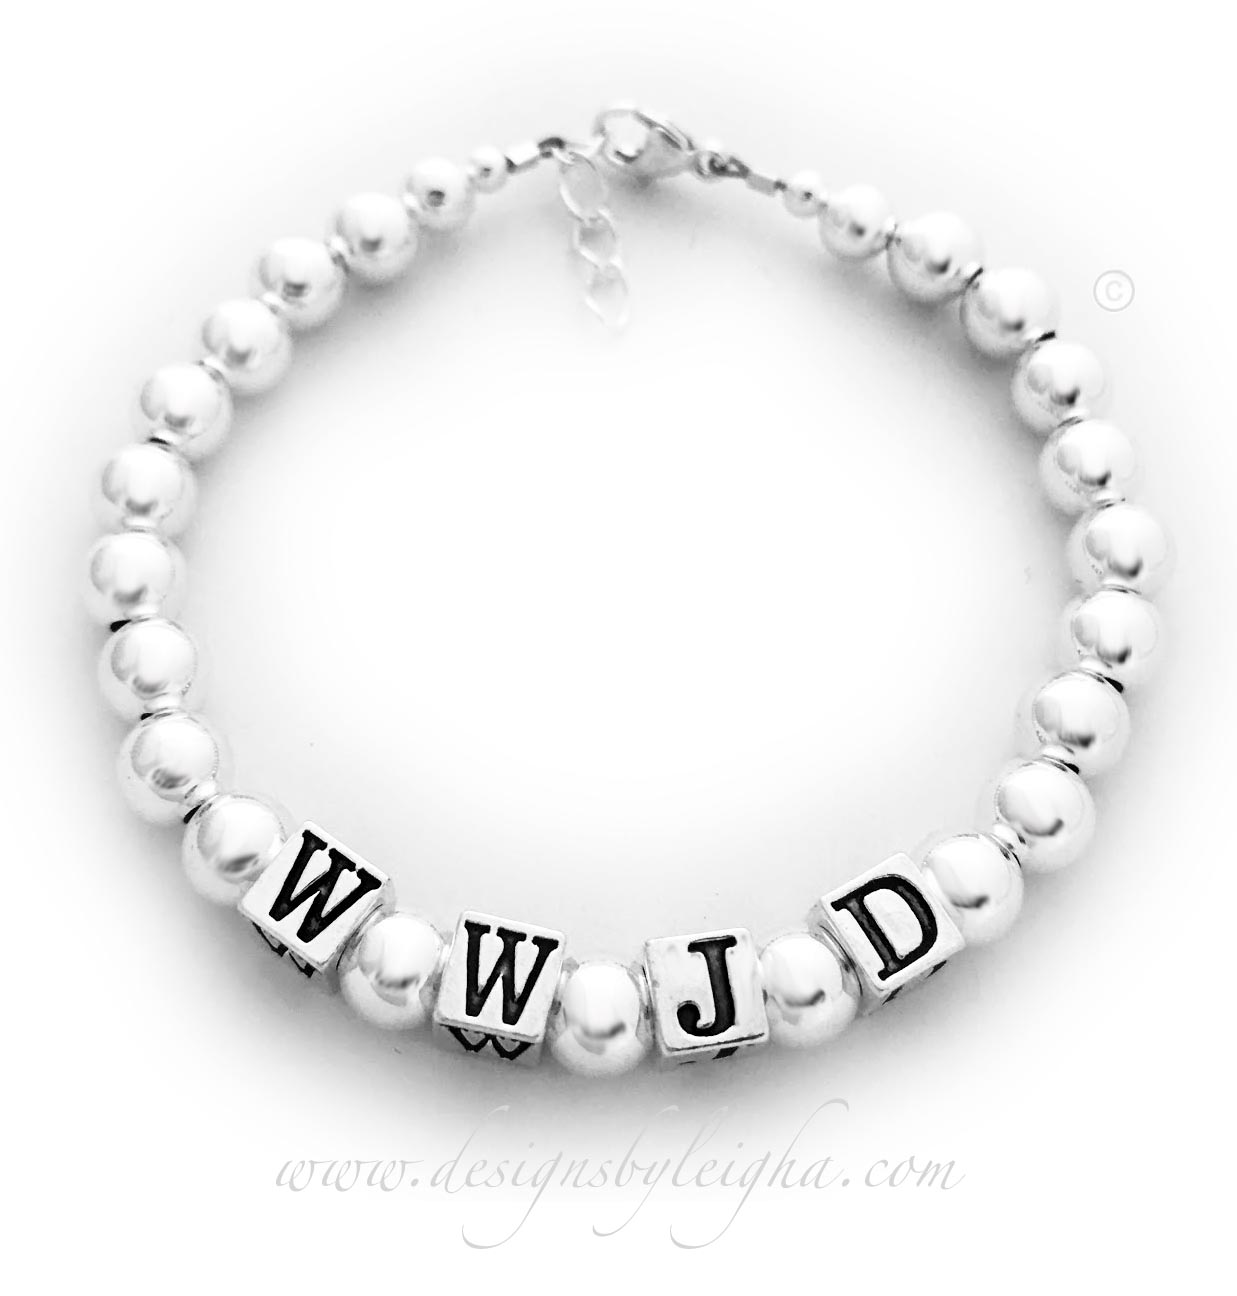 DBL-WWJD-9  What Would Jesus Do Bracelet - All Sterling Silver  #wwjd #wwjdbracelet #whatwouldjesusdo #whatwouldjesusdobracelet